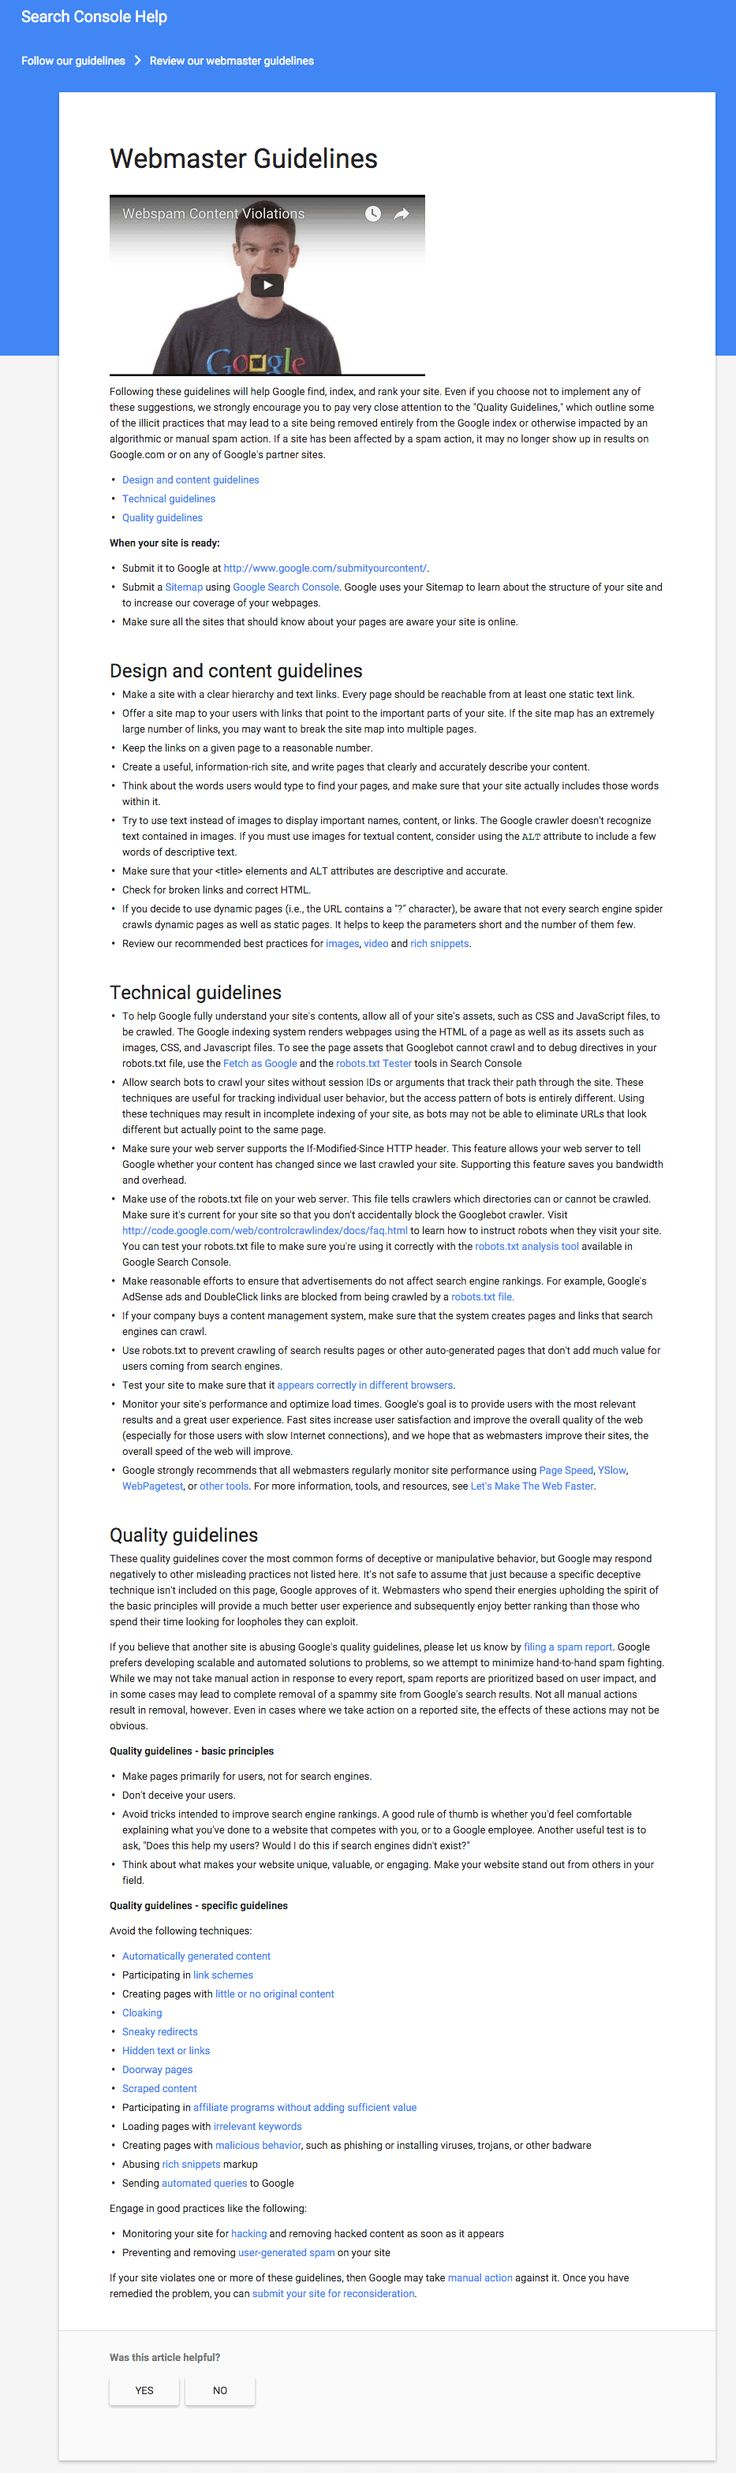 old-google-webmaster-guidelines  Google has made significant changes to the content on their Webmaster Guidelines documentation.  Google has quietly updated their Webmaster Guidelines document, which is one of the first places webmasters should go when learning about SEO best practices and dos and don'ts.